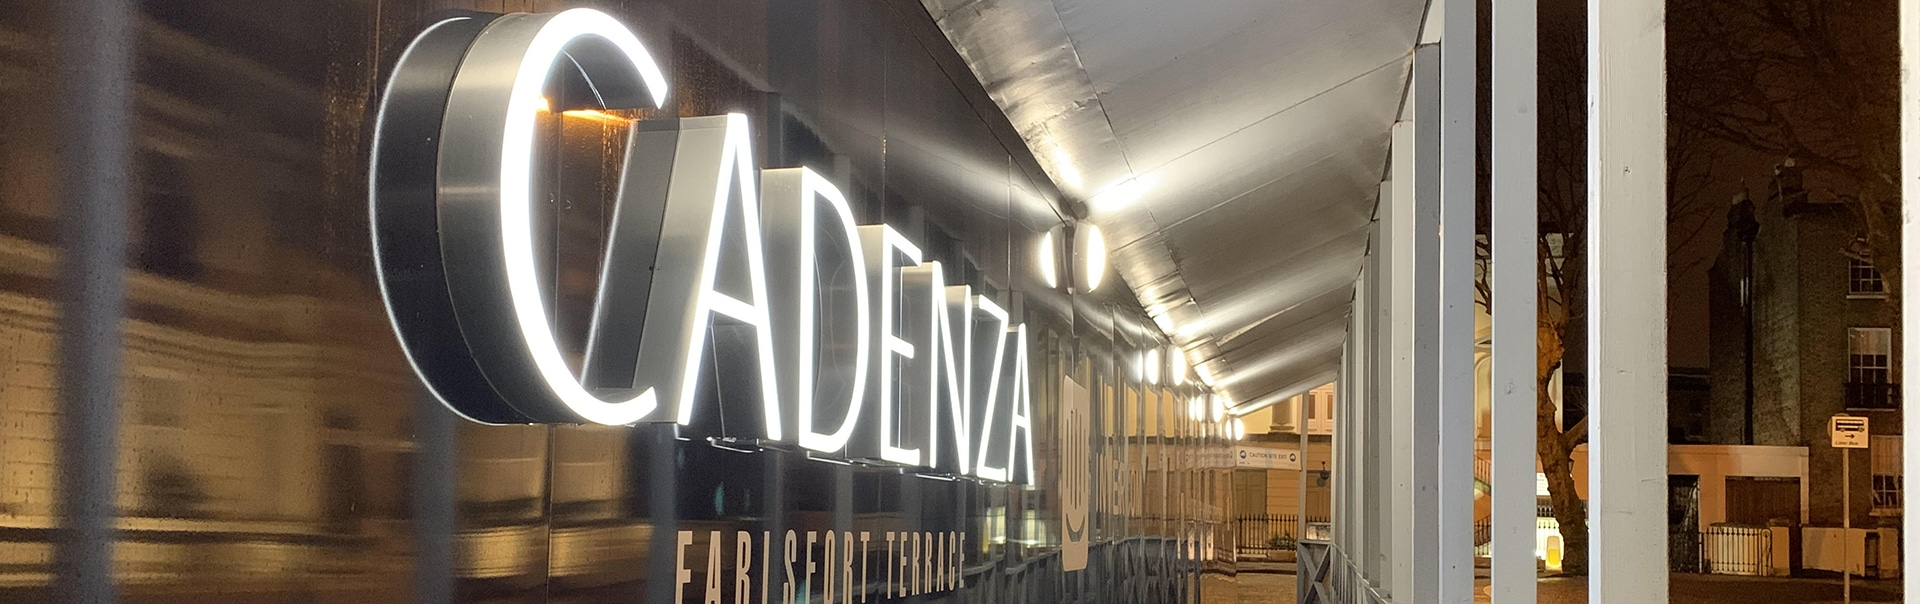 Illuminated letters attract attention to a construction site hoarding